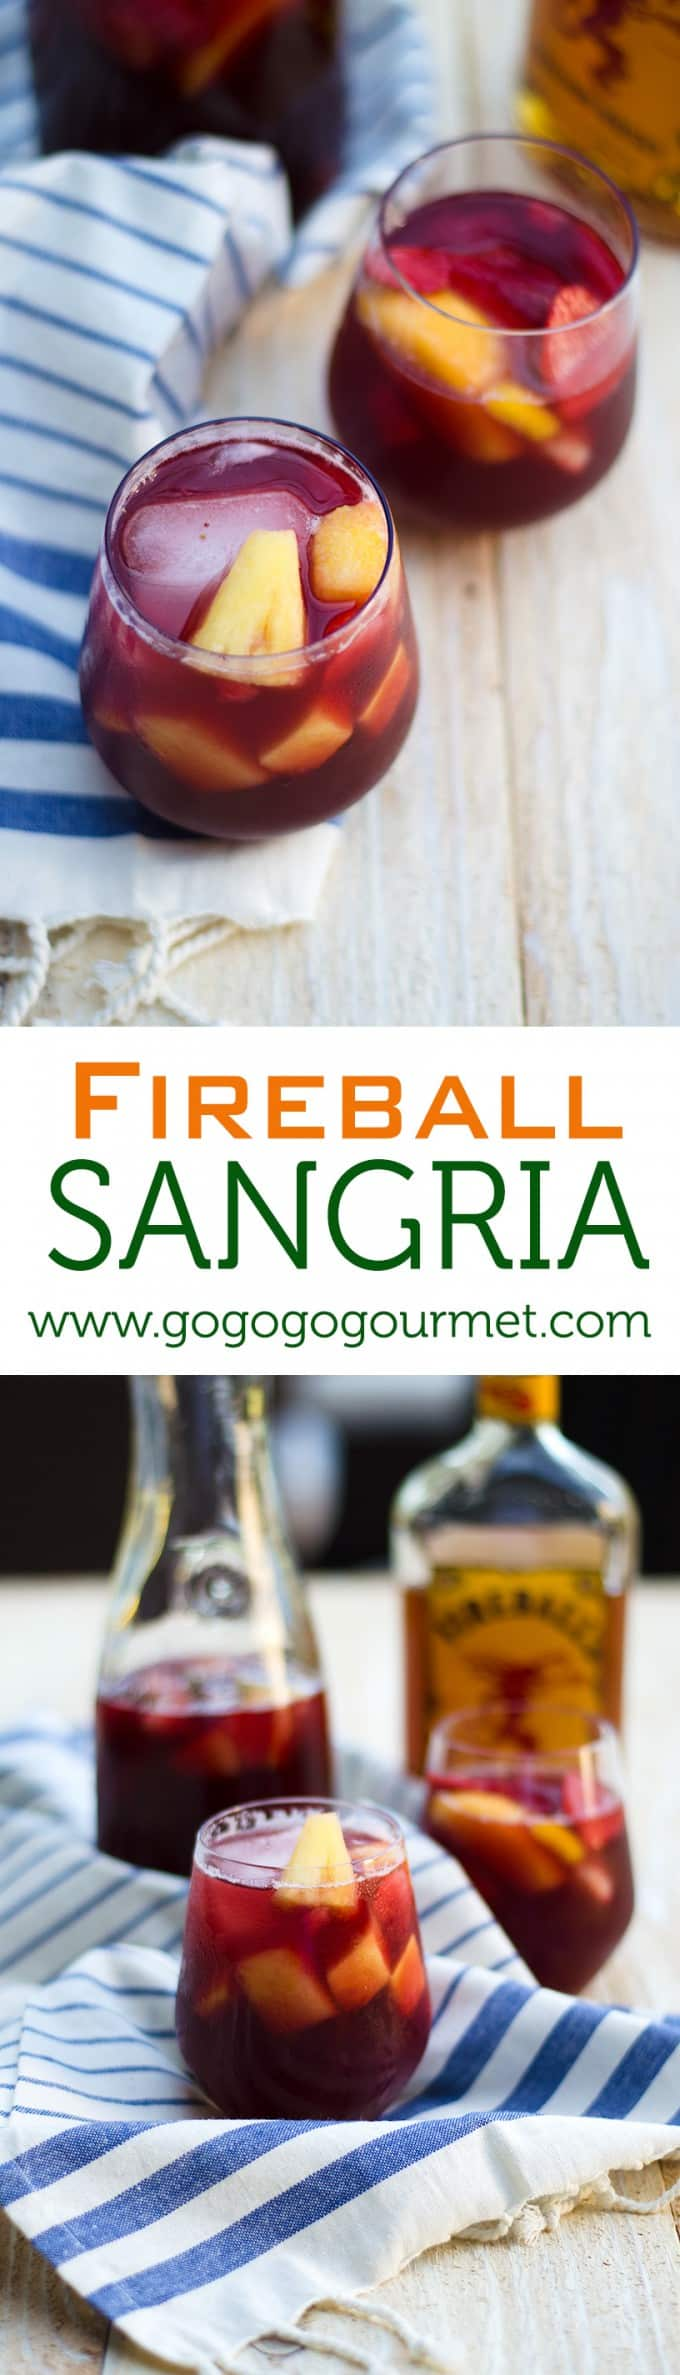 Fireball Sangria is the perfect way to cool down when it's warm outside- only a few ingredients go into this amazing cocktail!